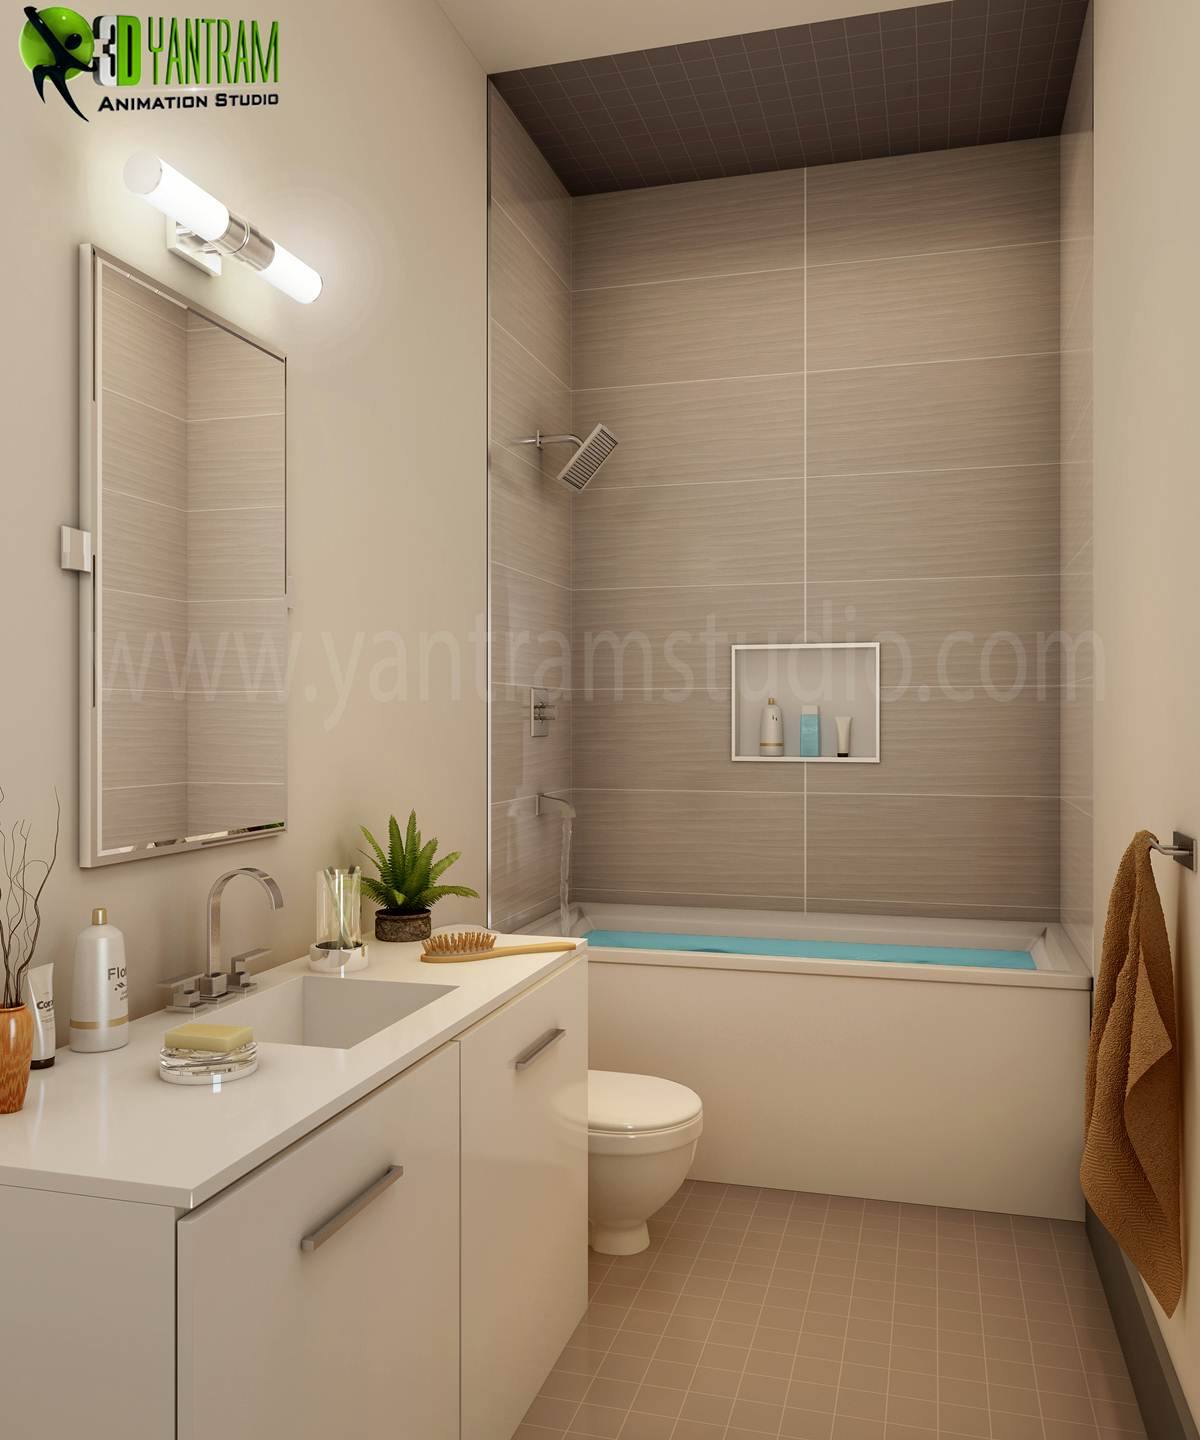 Bathroom Interior Design - Modern Common Bathroom Interior Design, Our Interior Design Studio has collection of elegant and modern interior design ideas for your property. We are expert in Architectural design studio, 3D Architectural Design, 3D Interior Design, Architectural Visua by yantramstudio